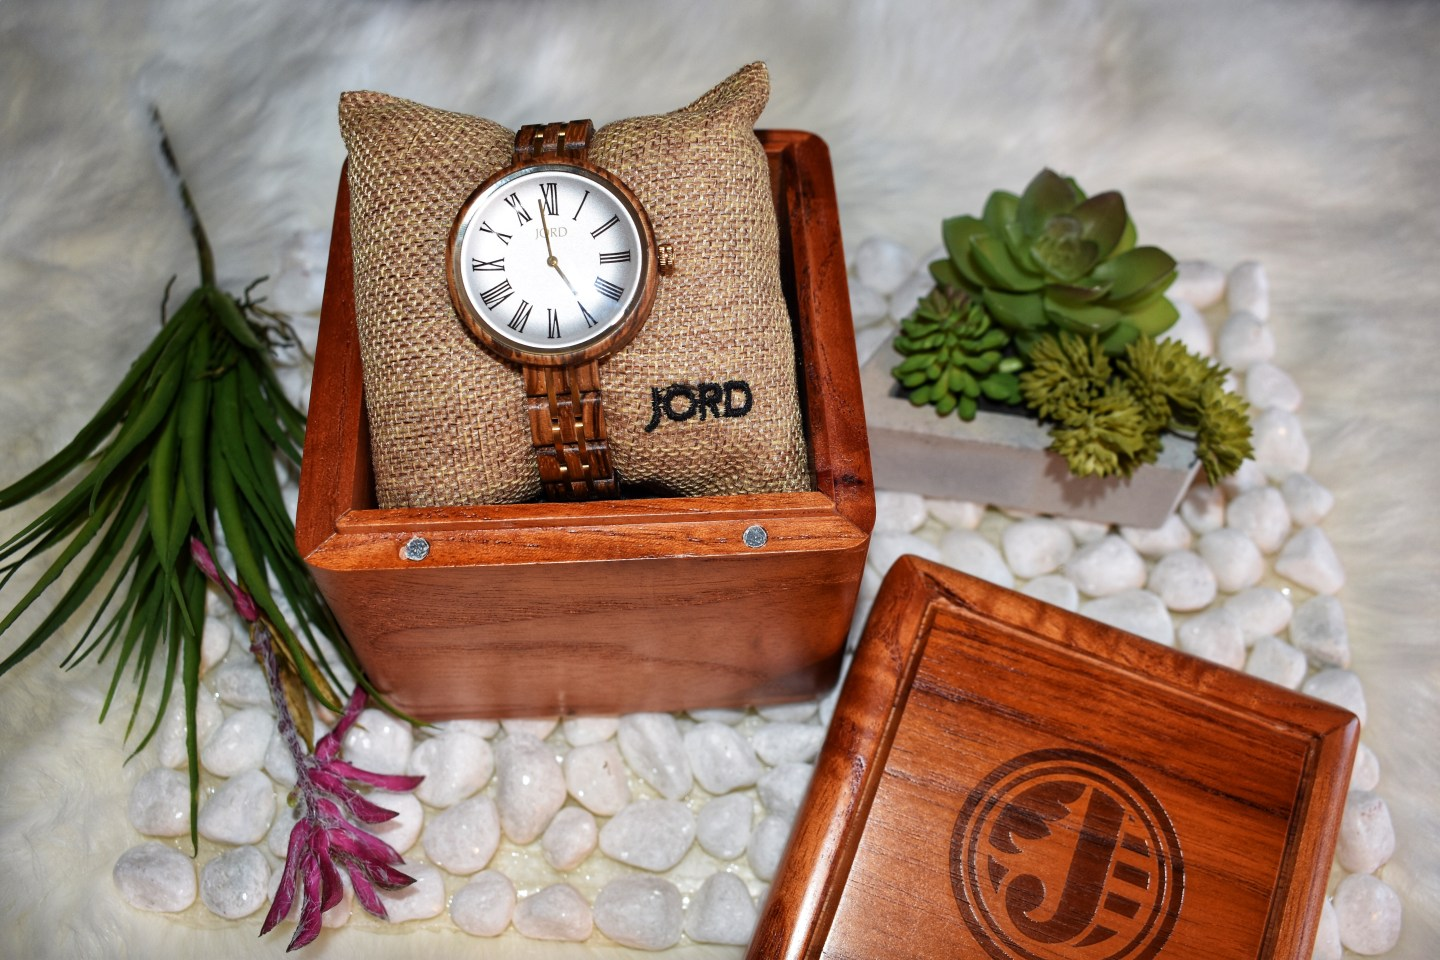 Spring Trend - Jord Wood Watches - lifestylebykatie.com